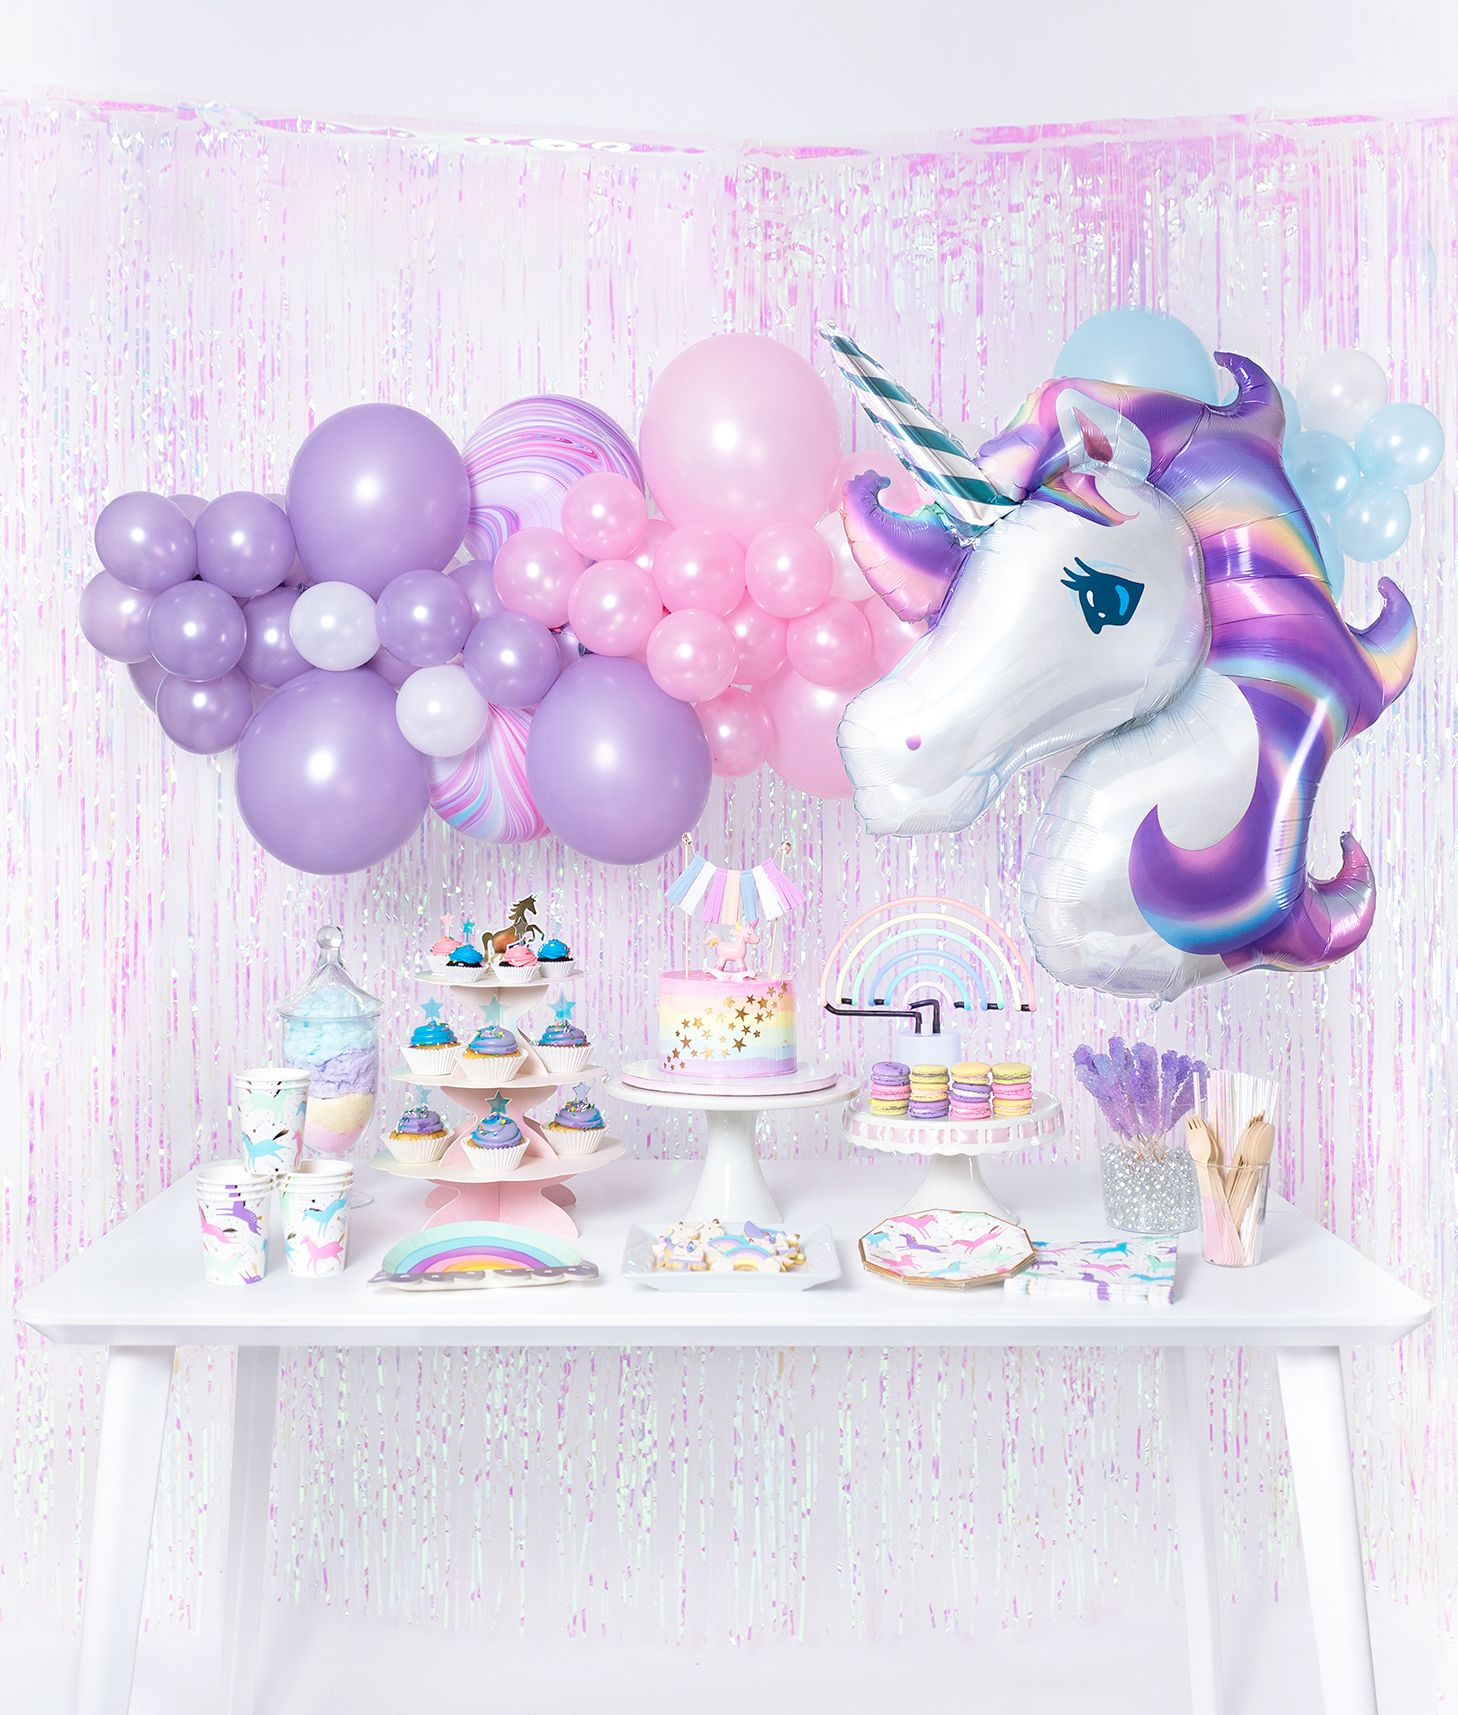 Magical Unicorn Boxes Unicorn Themed Birthday Party Unicorn Birthday Party Decorations Unicorn Themed Birthday